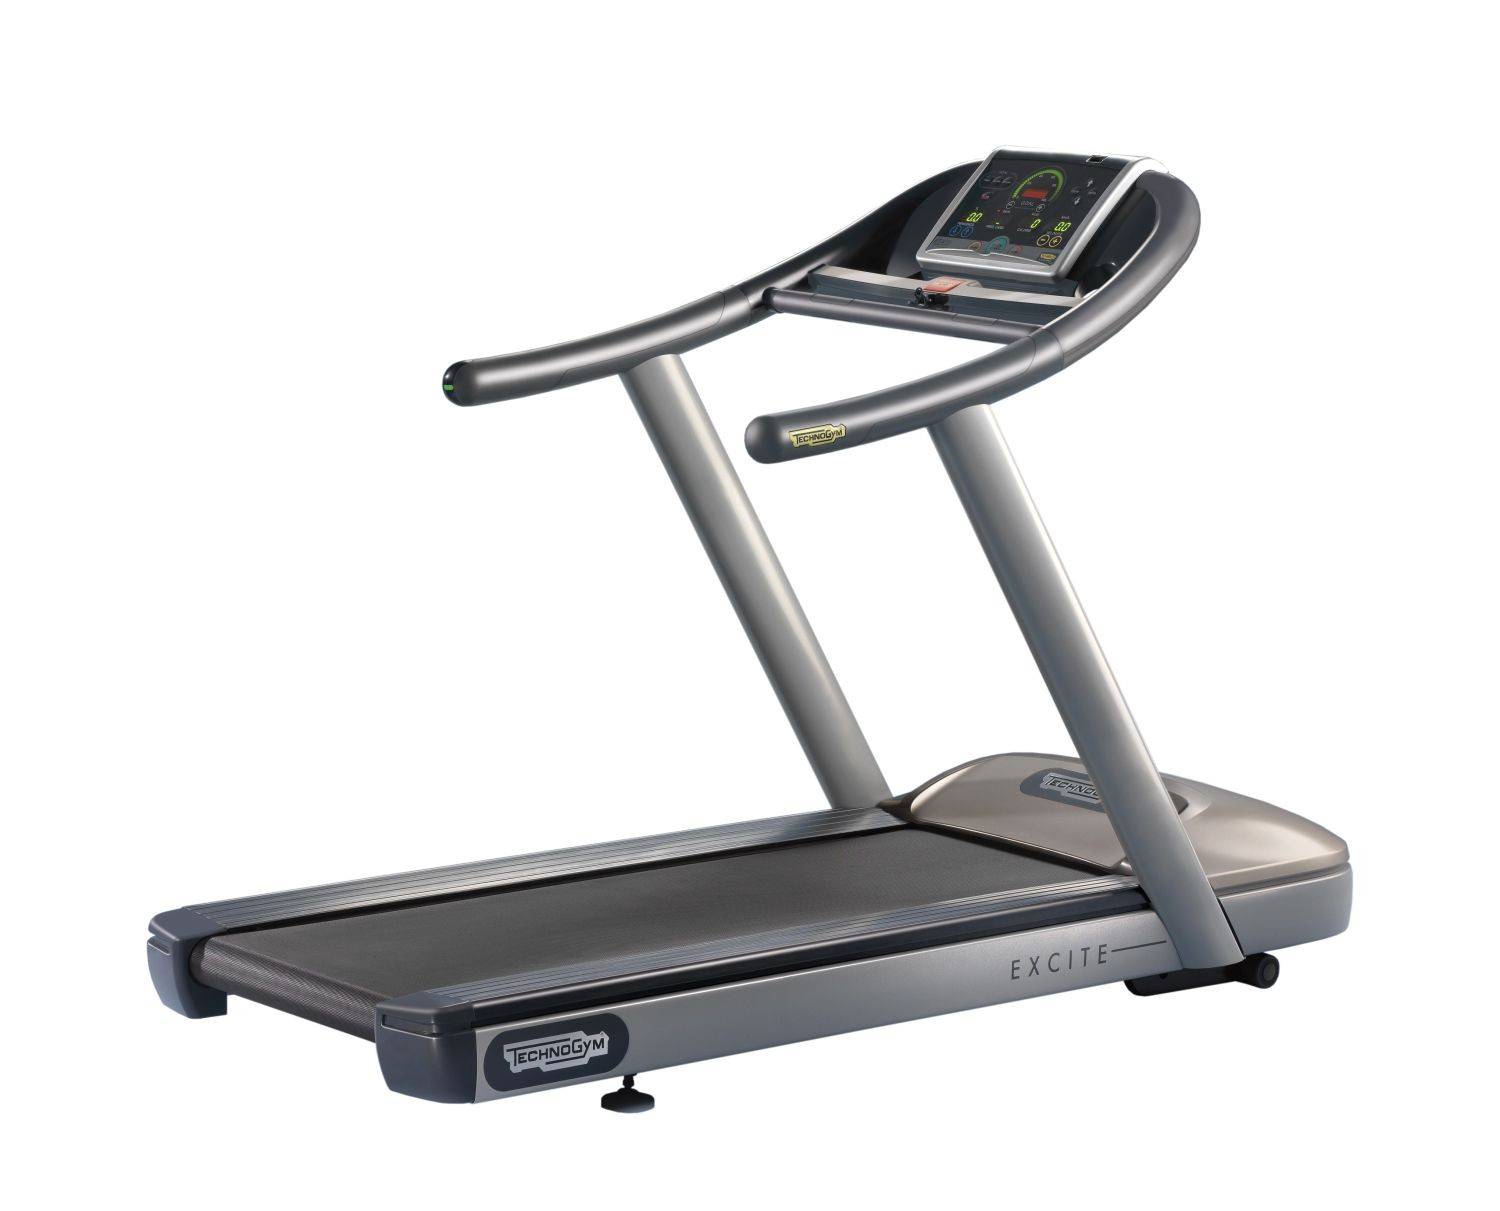 Technogym Excite 700 Run